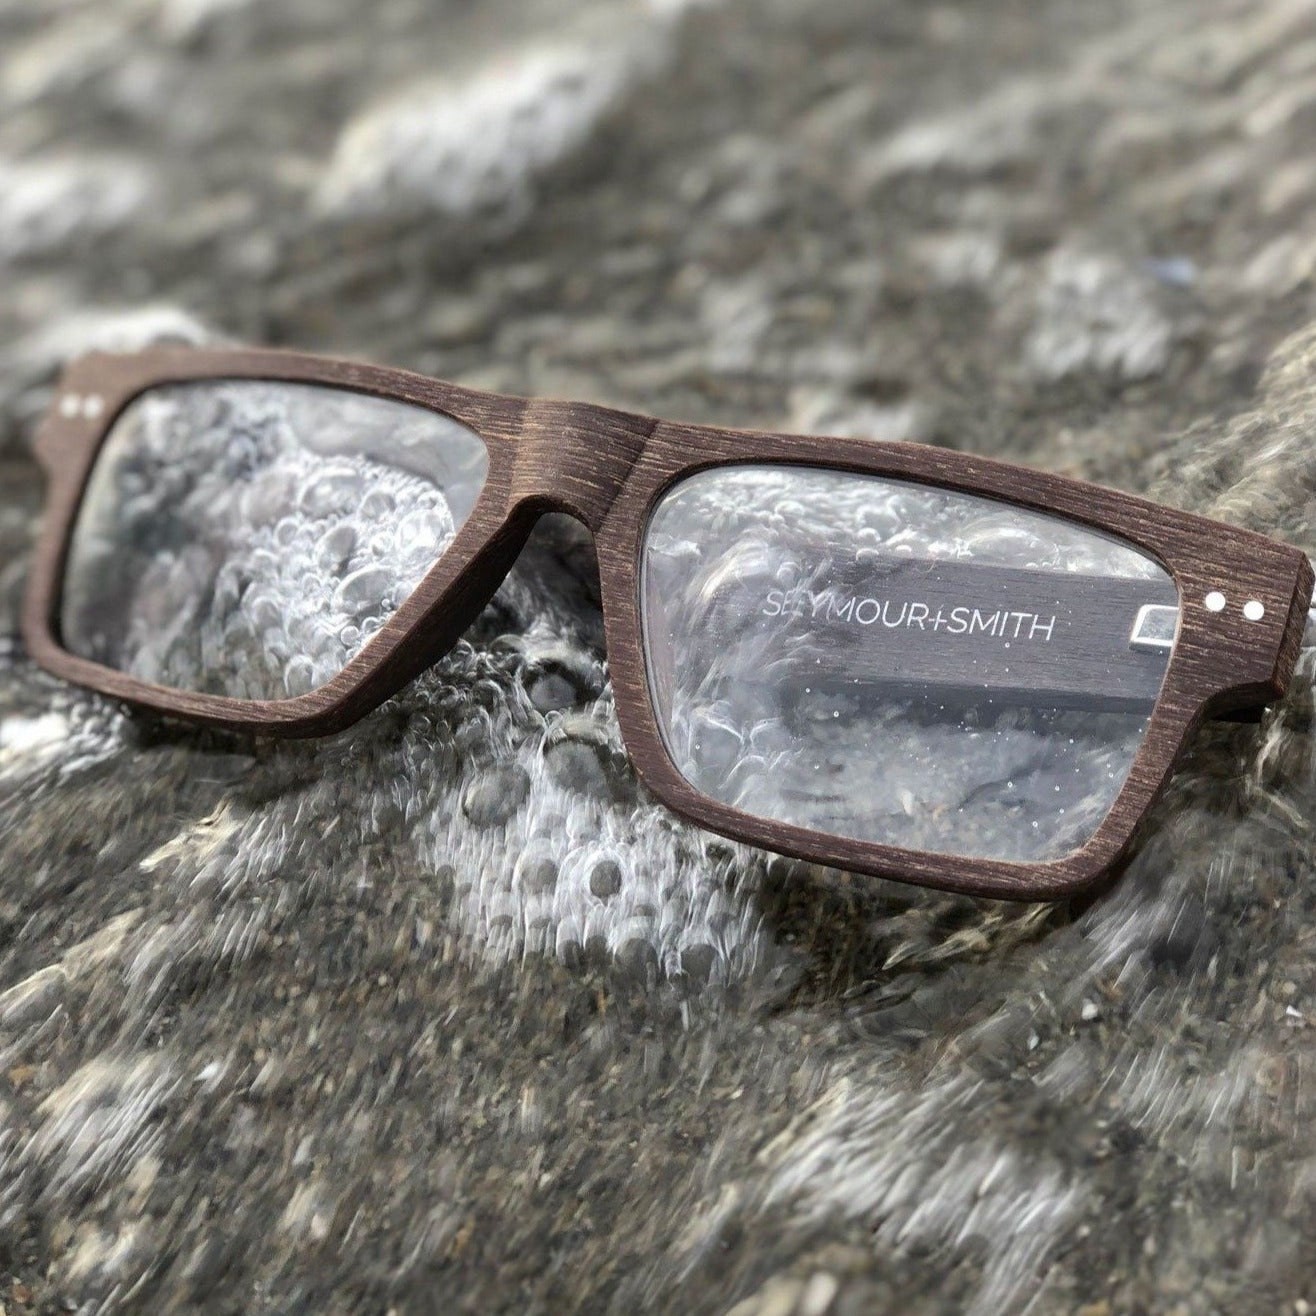 Downtown Brown Reading Glasses for Men by Seymour and Smith